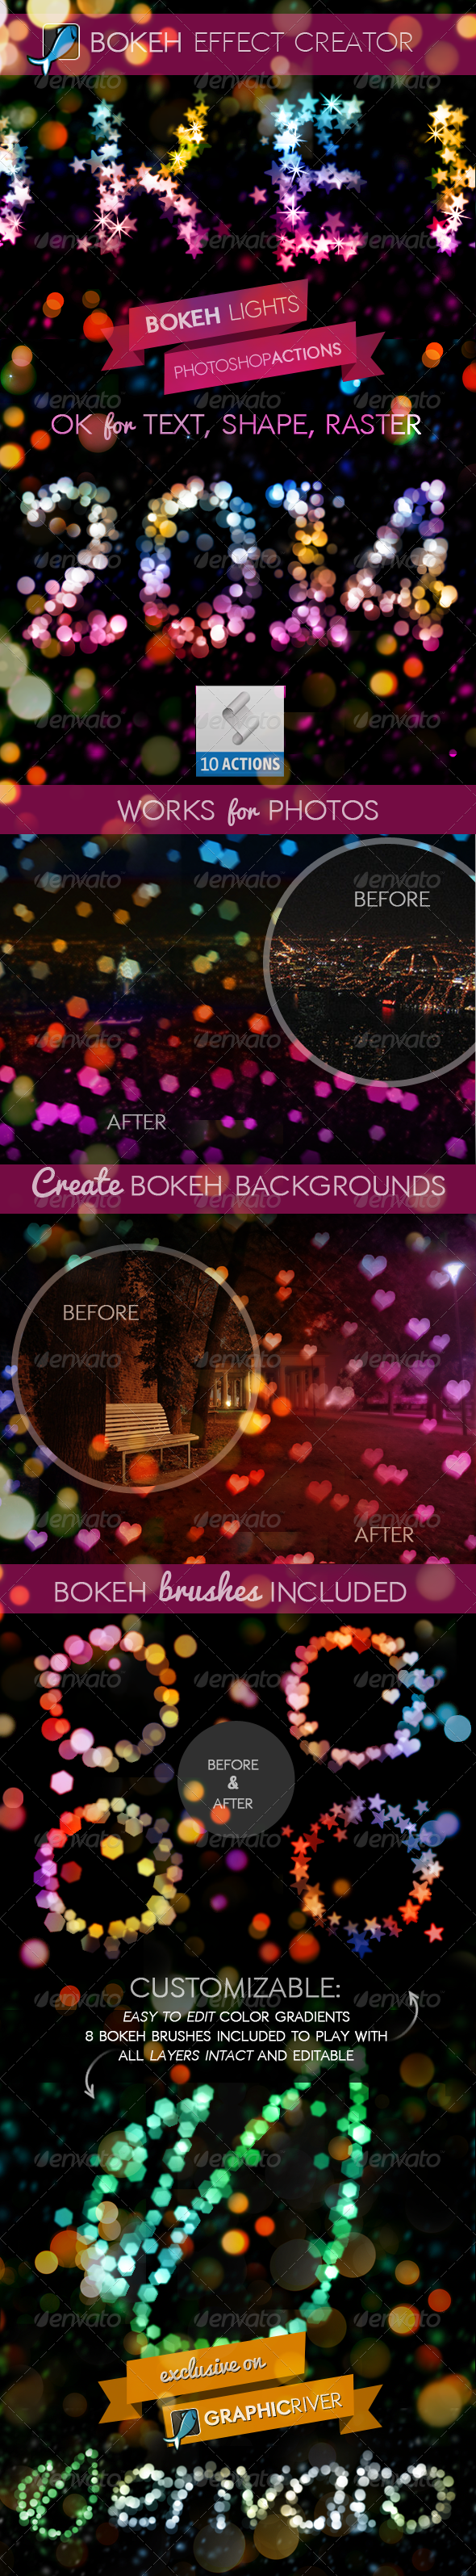 GraphicRiver Bokeh Light Creator Photoshop Actions 6530161